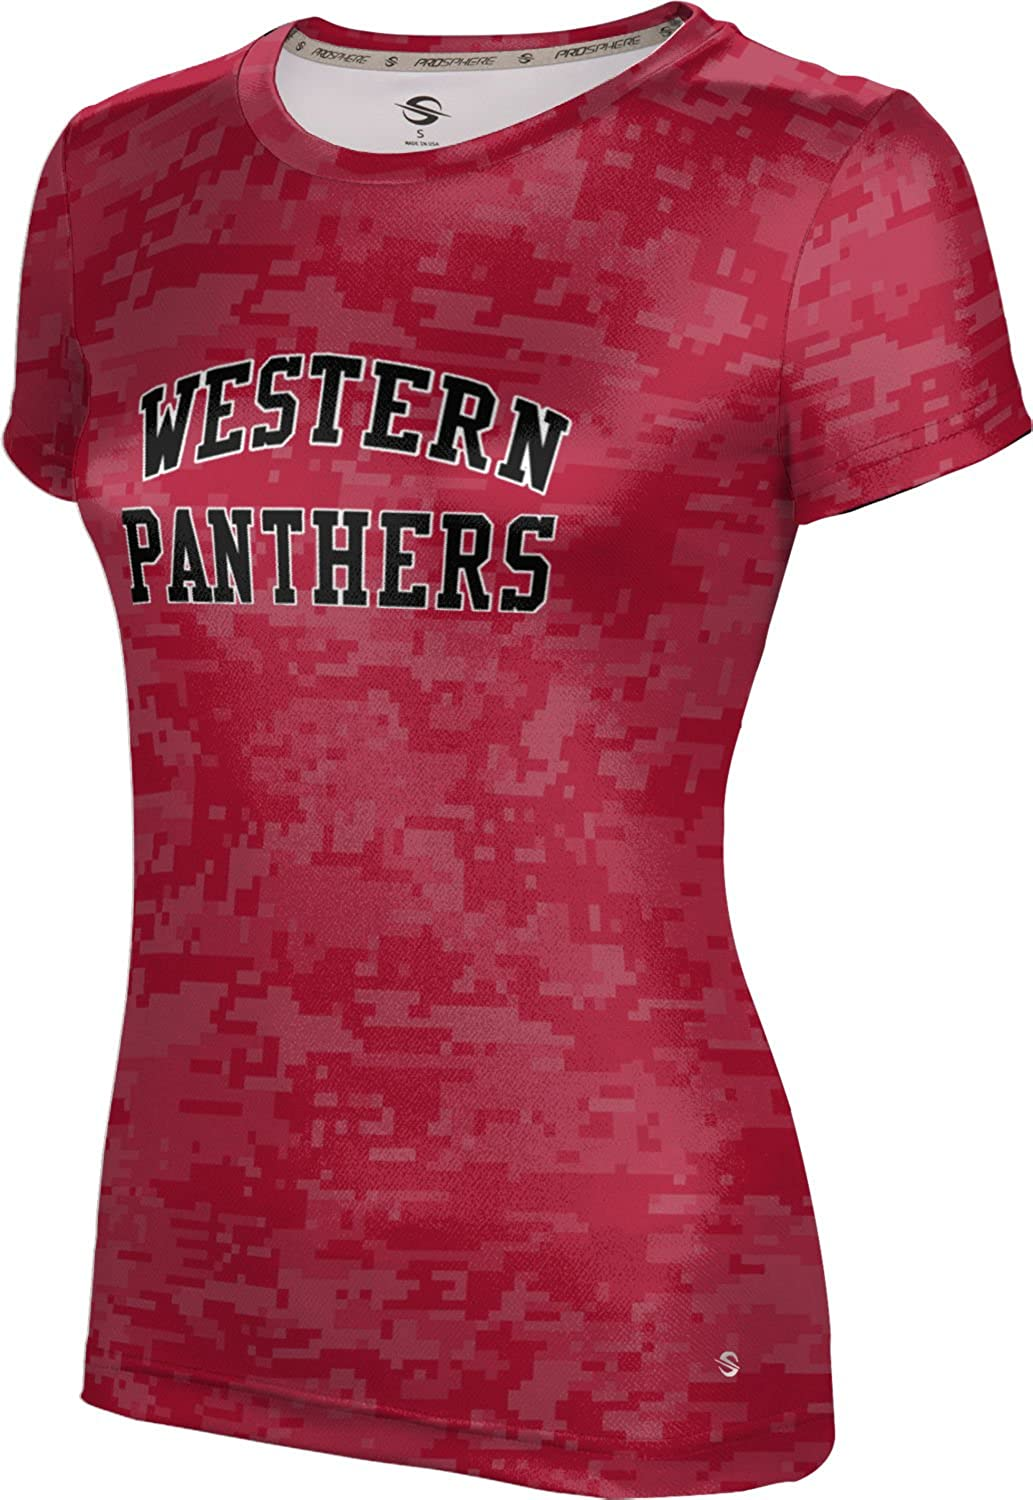 ProSphere Women's Western High School Digital Tech Tee